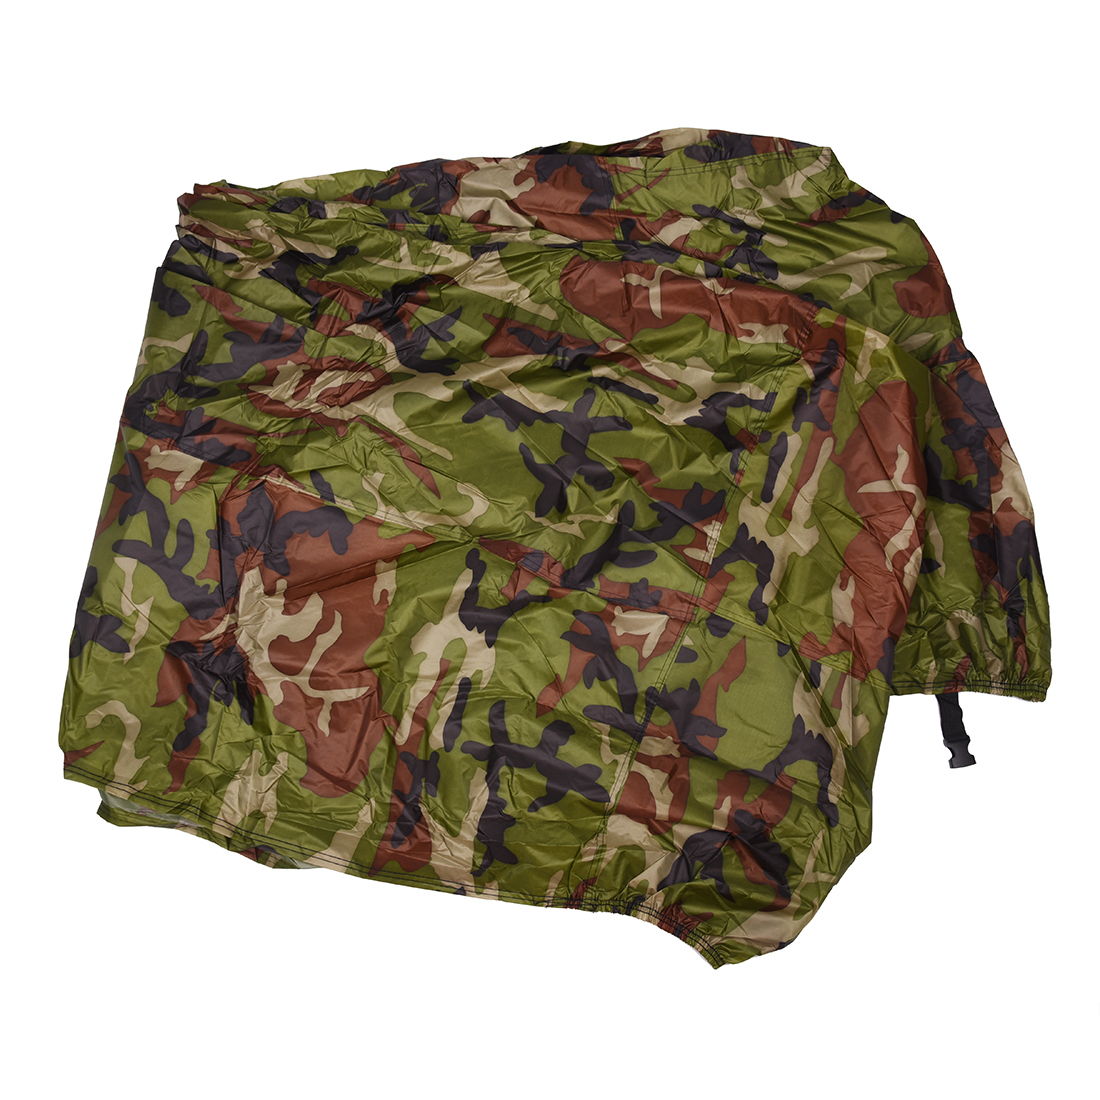 MOTO TARPAULIN COVER Motorcycle Covers mountain bike scooter bike protection